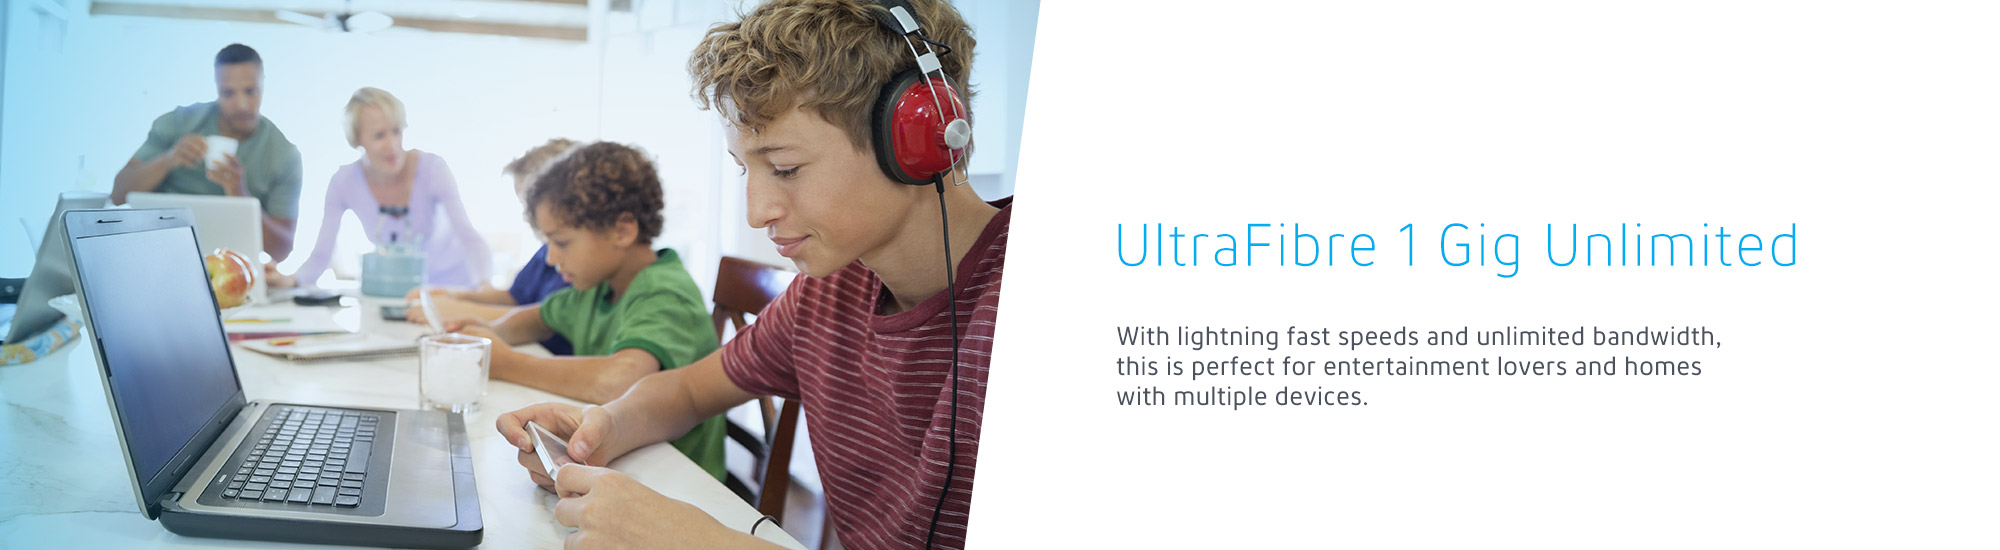 UltraFibre 1Gig Unlimited With lightning fast speeds and unlimited bandwidth, this is perfect for entertainment lovers and homes with multiple devices.